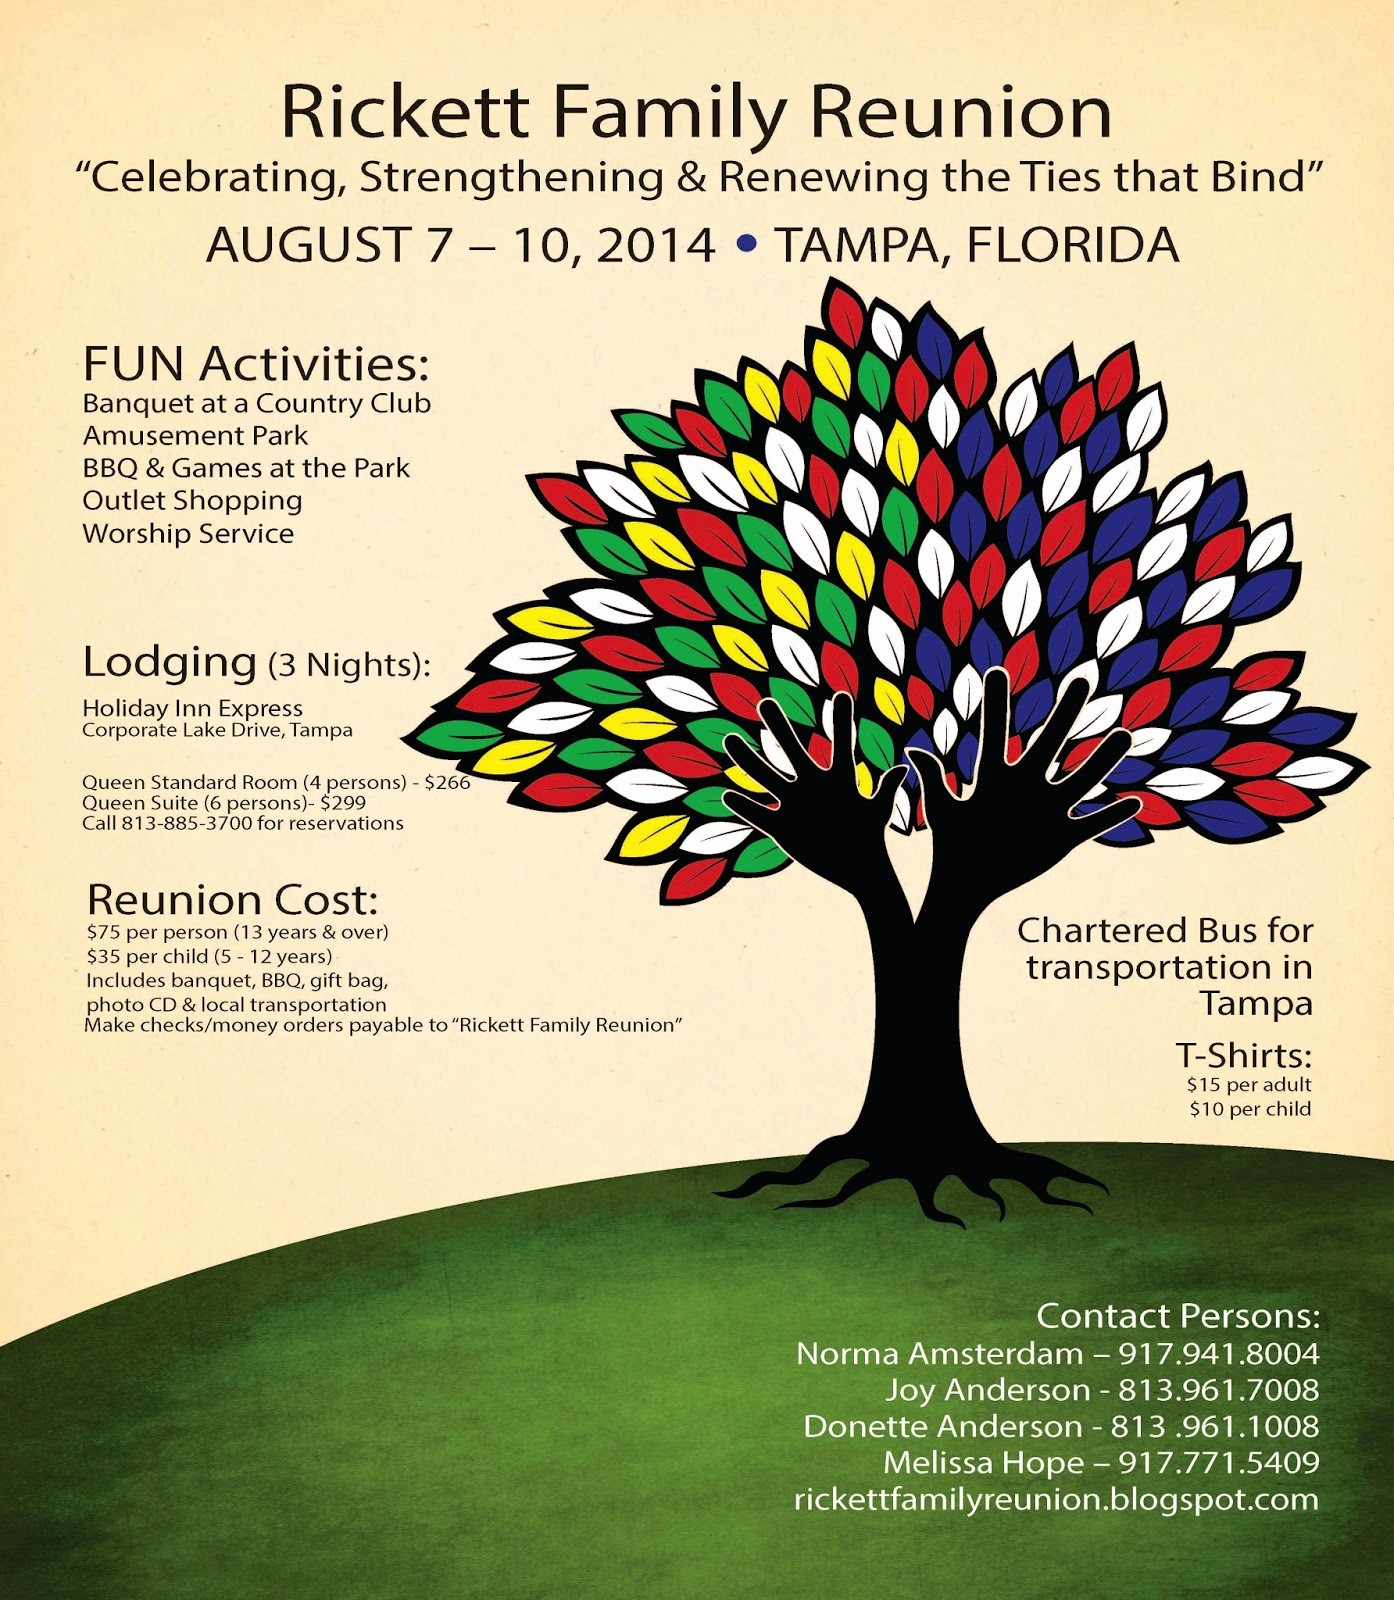 Free Family Reunion Flyer Template Fresh Rickett Family Reunion Blog